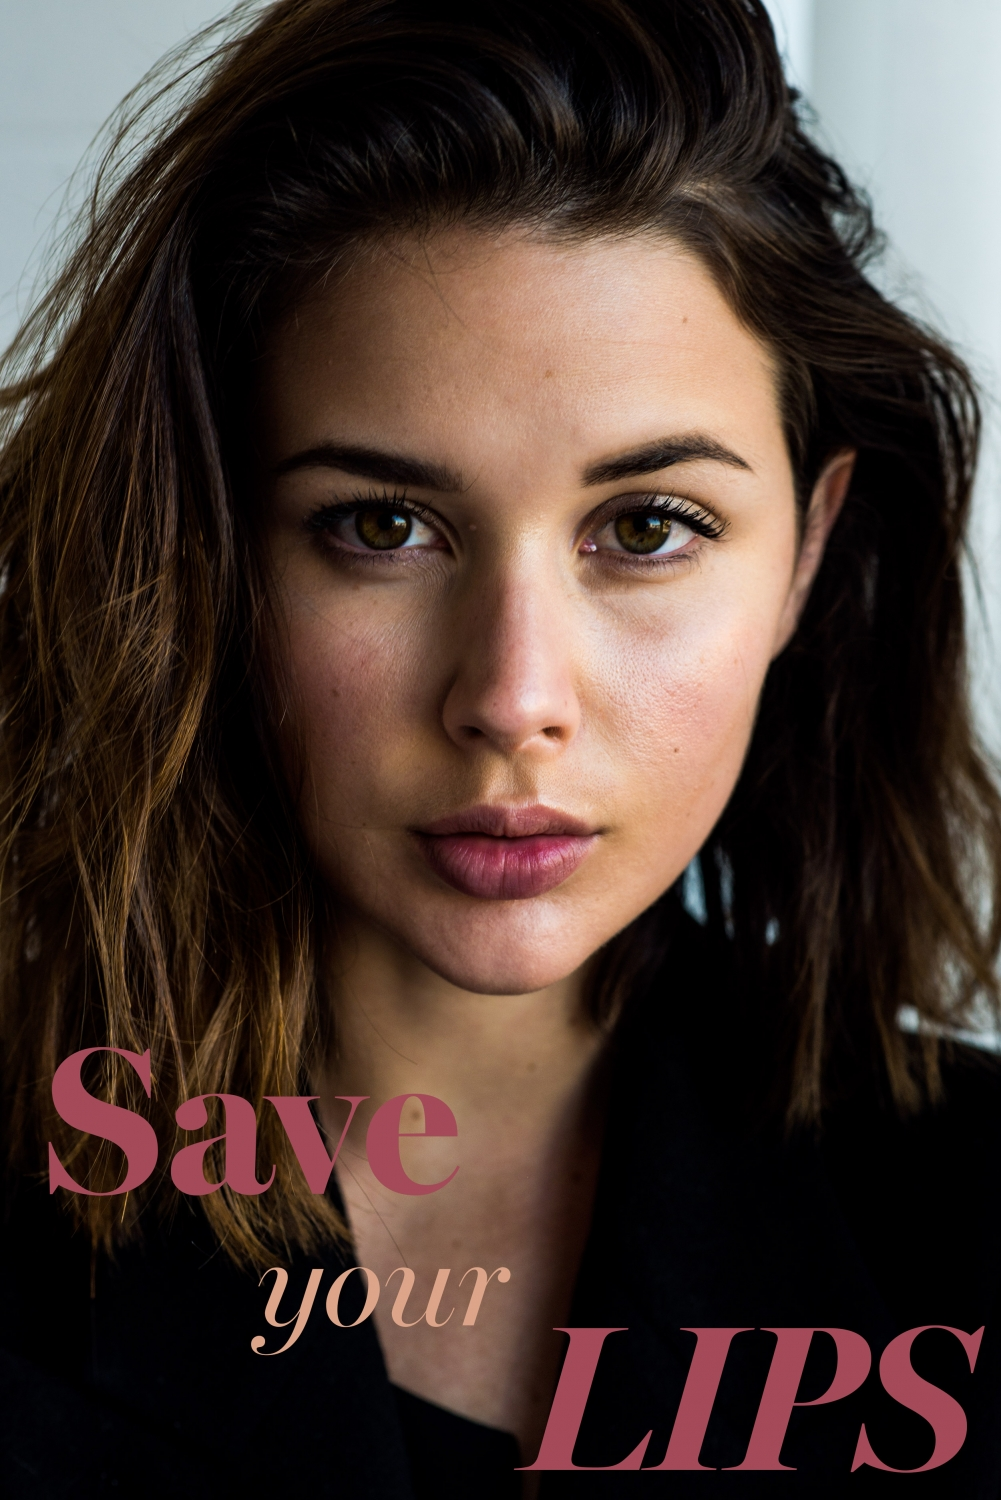 save those lips, skincare advice on how to save your dry cracked and chapped lips, Harper and Harley